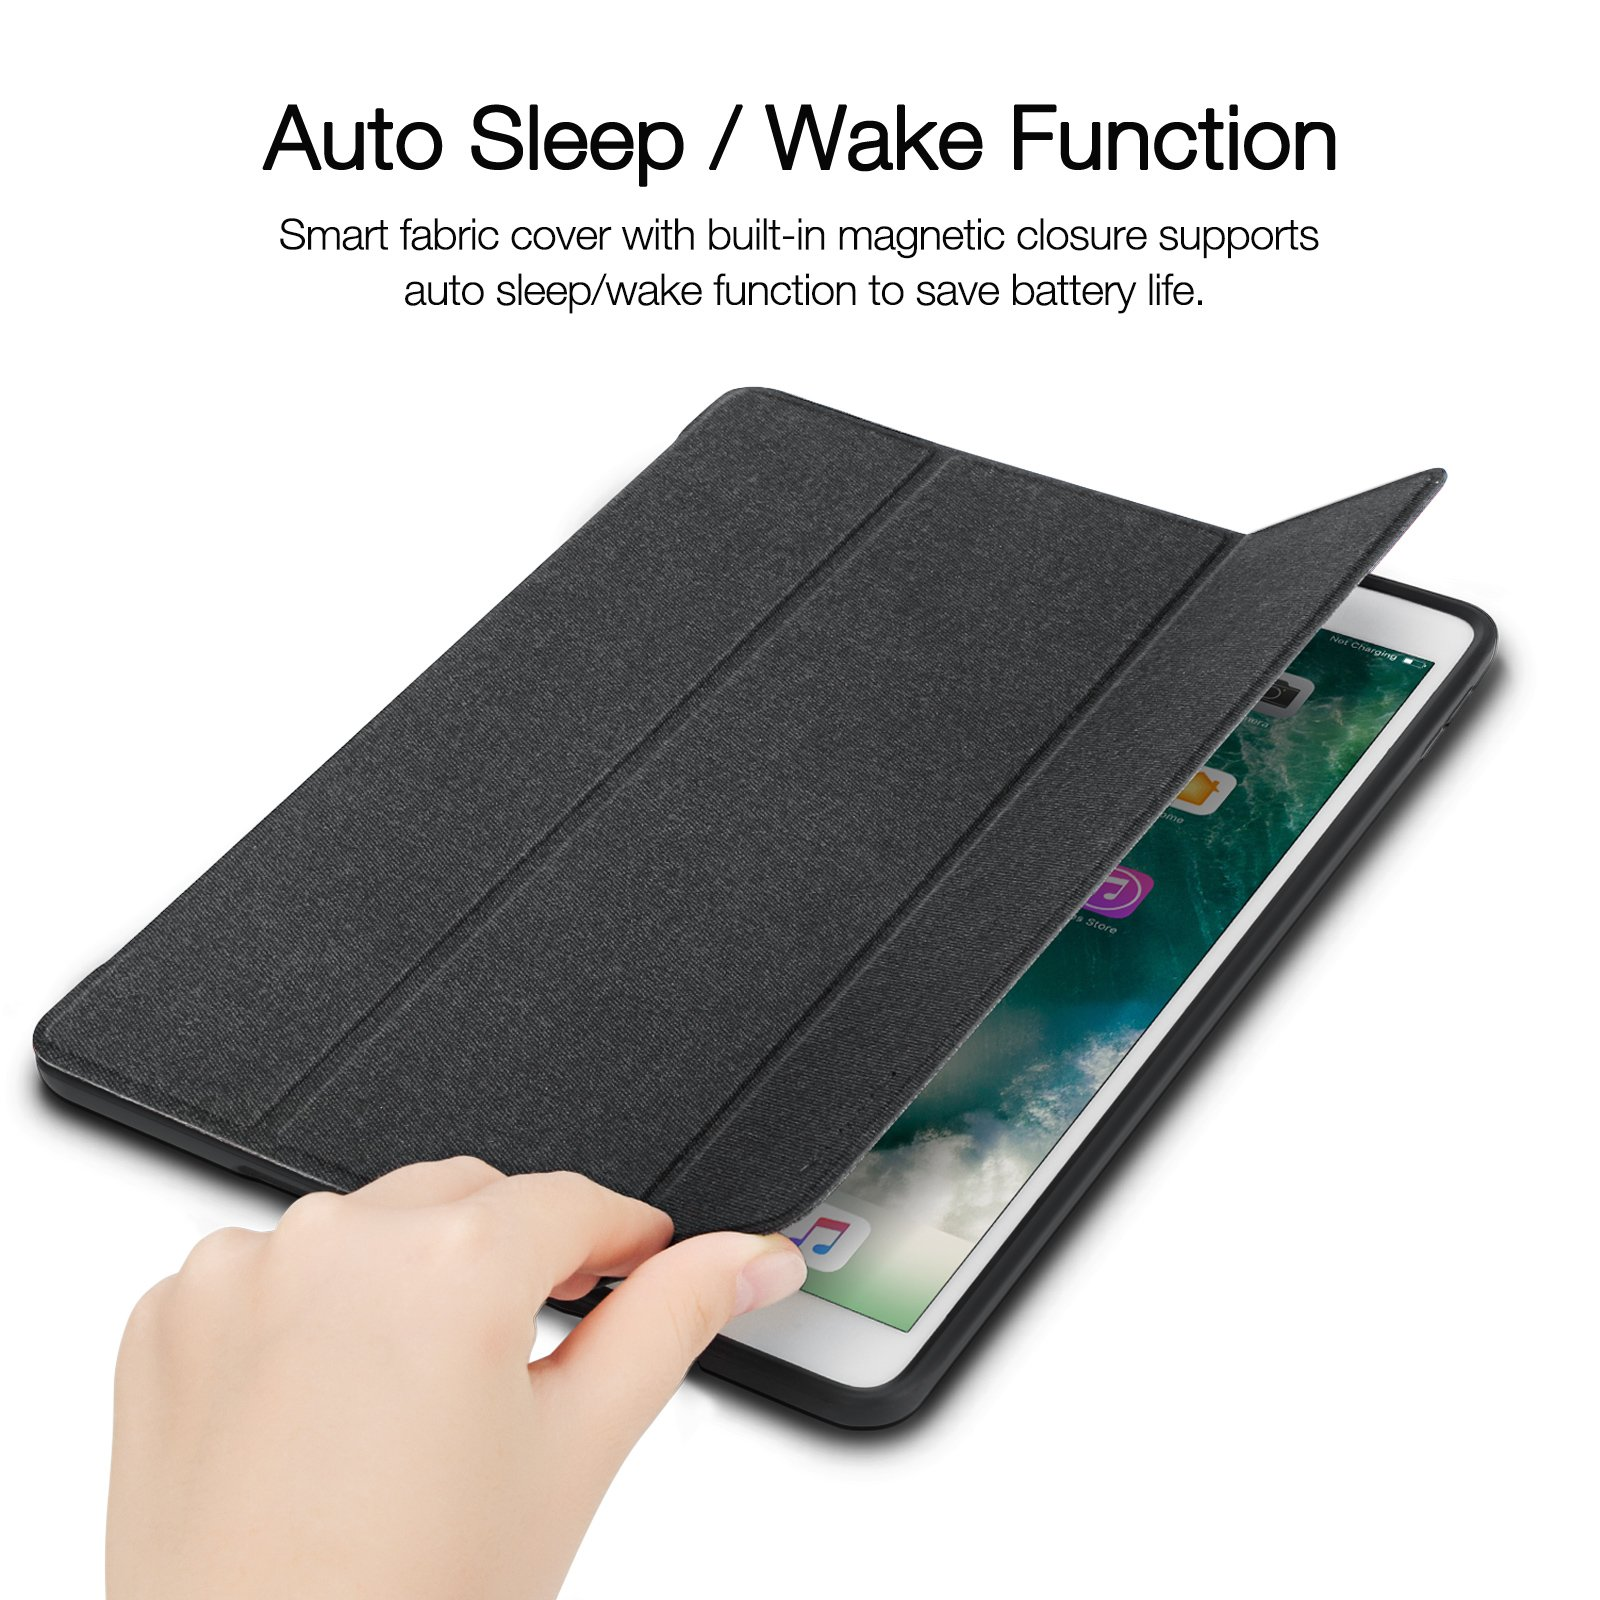 iVAPO iPad Pro 10.5 Case Pencil Holder Auto Sleep Wake Function Typing Viewing Tri-fold Stand PU Leather Smart Cover for iPad Pro 10.5 inch 2017 Black Denim Leather by iVAPO (Image #3)